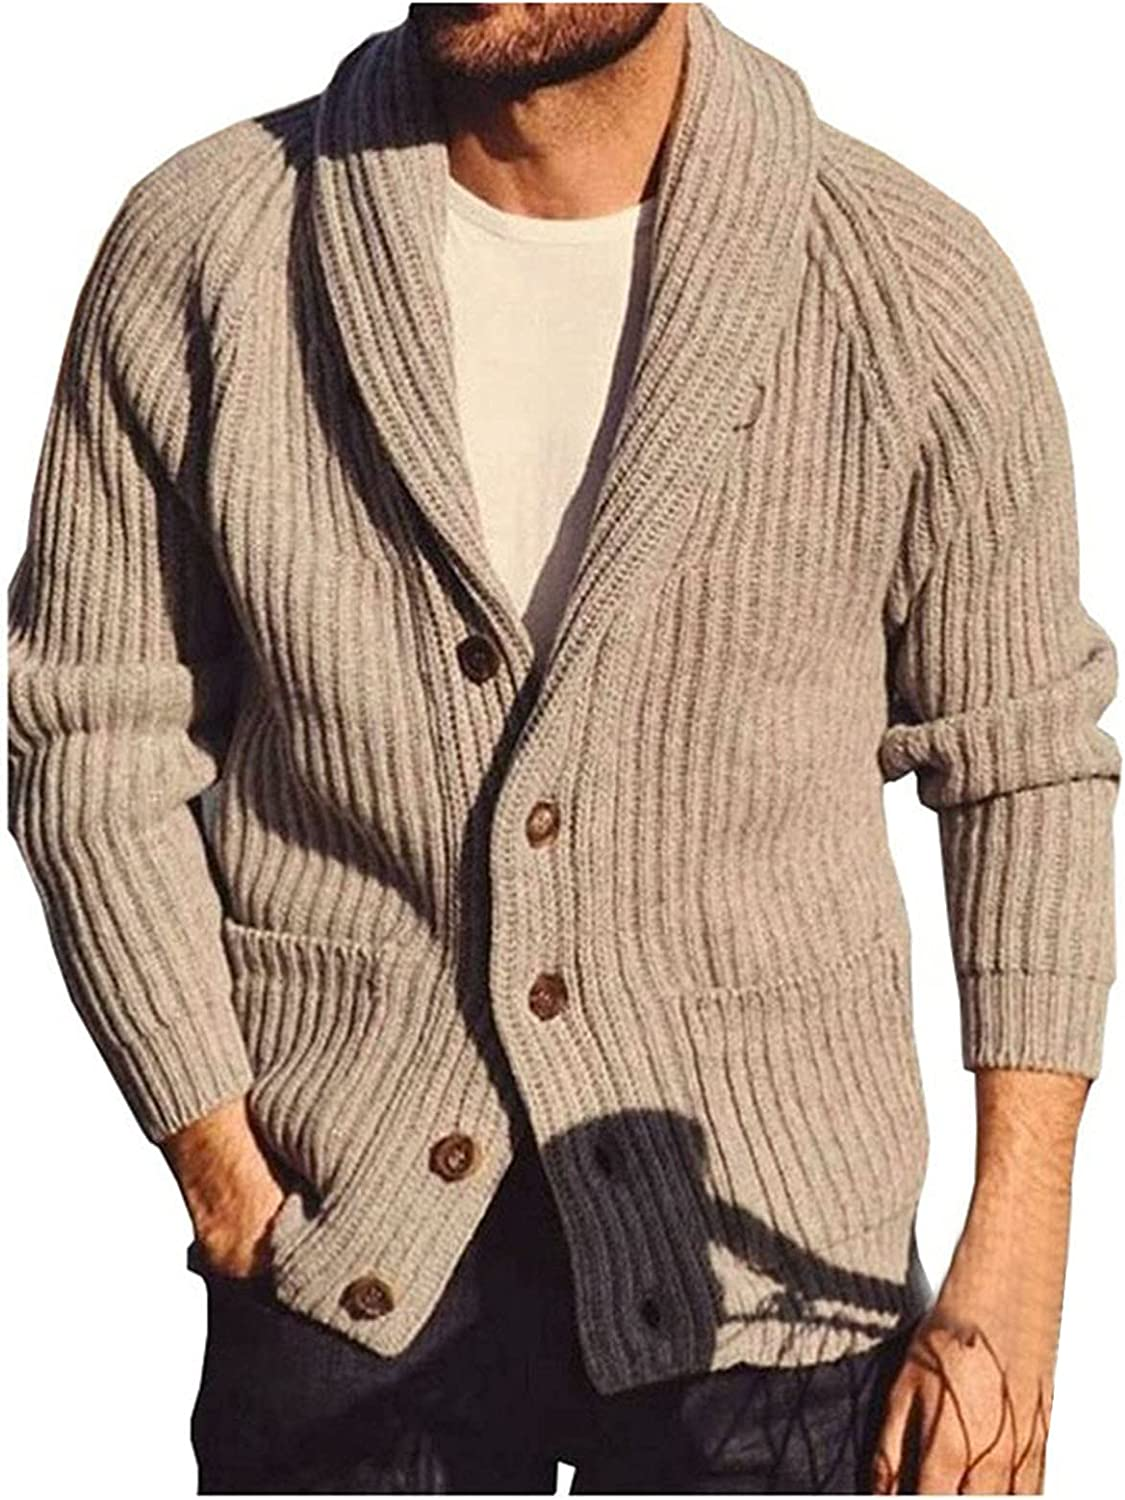 Huangse Slim Fit Shawl Collar Knitted Cardigan for Men Long Sleeve Button Down Ribbed Cardigan Sweaters with Pockets